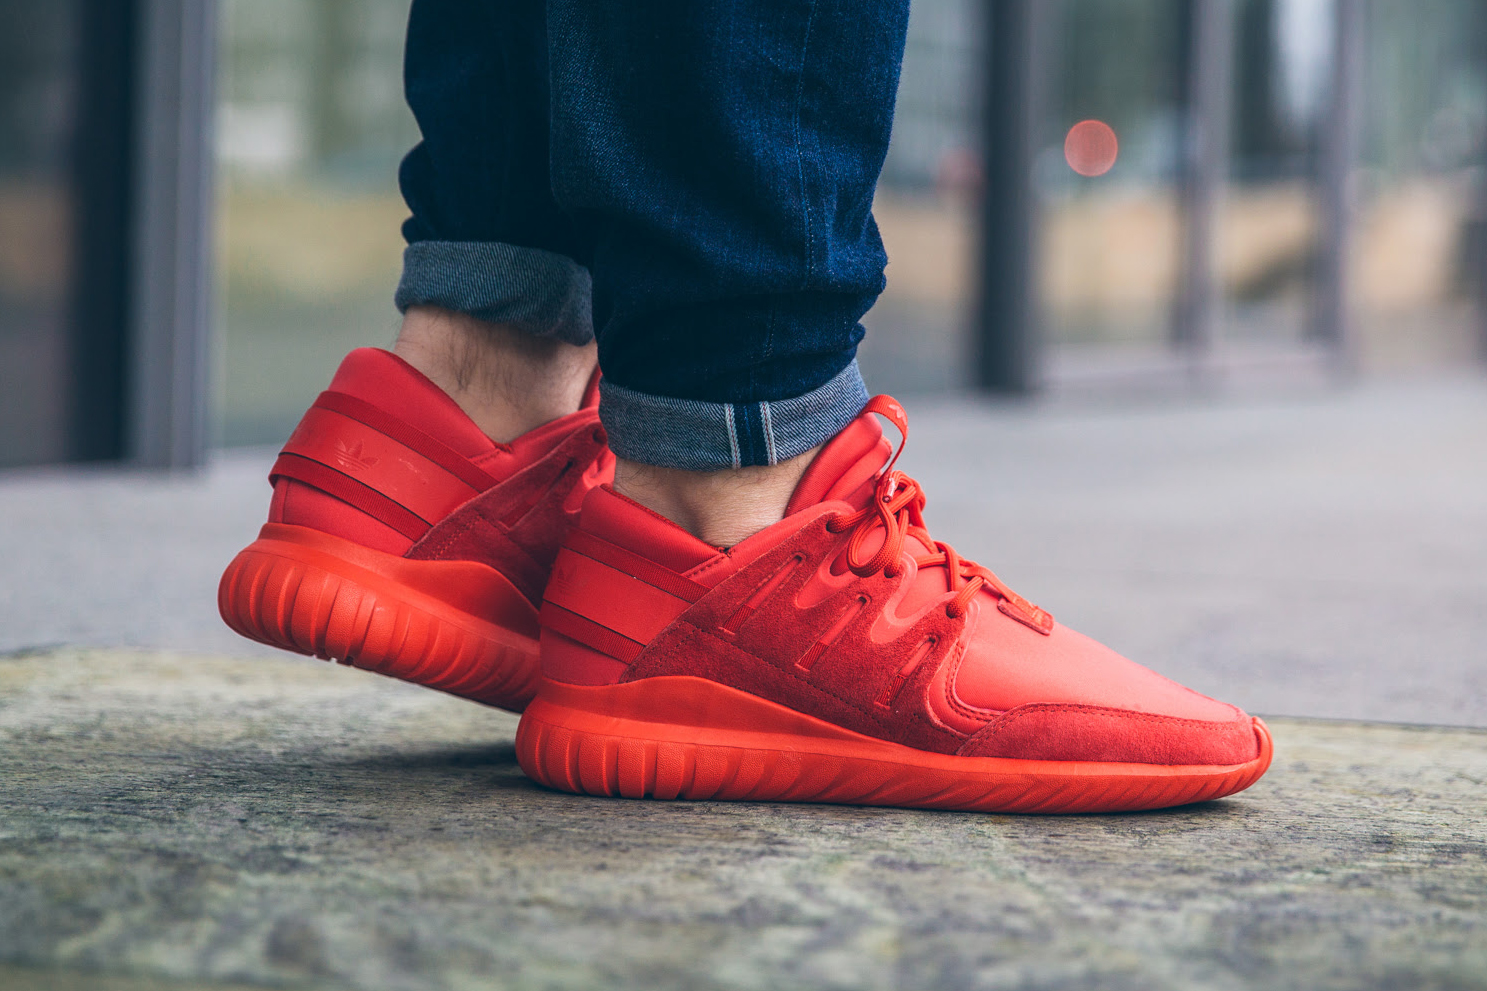 The Really Clean adidas Originals Tubular Viral